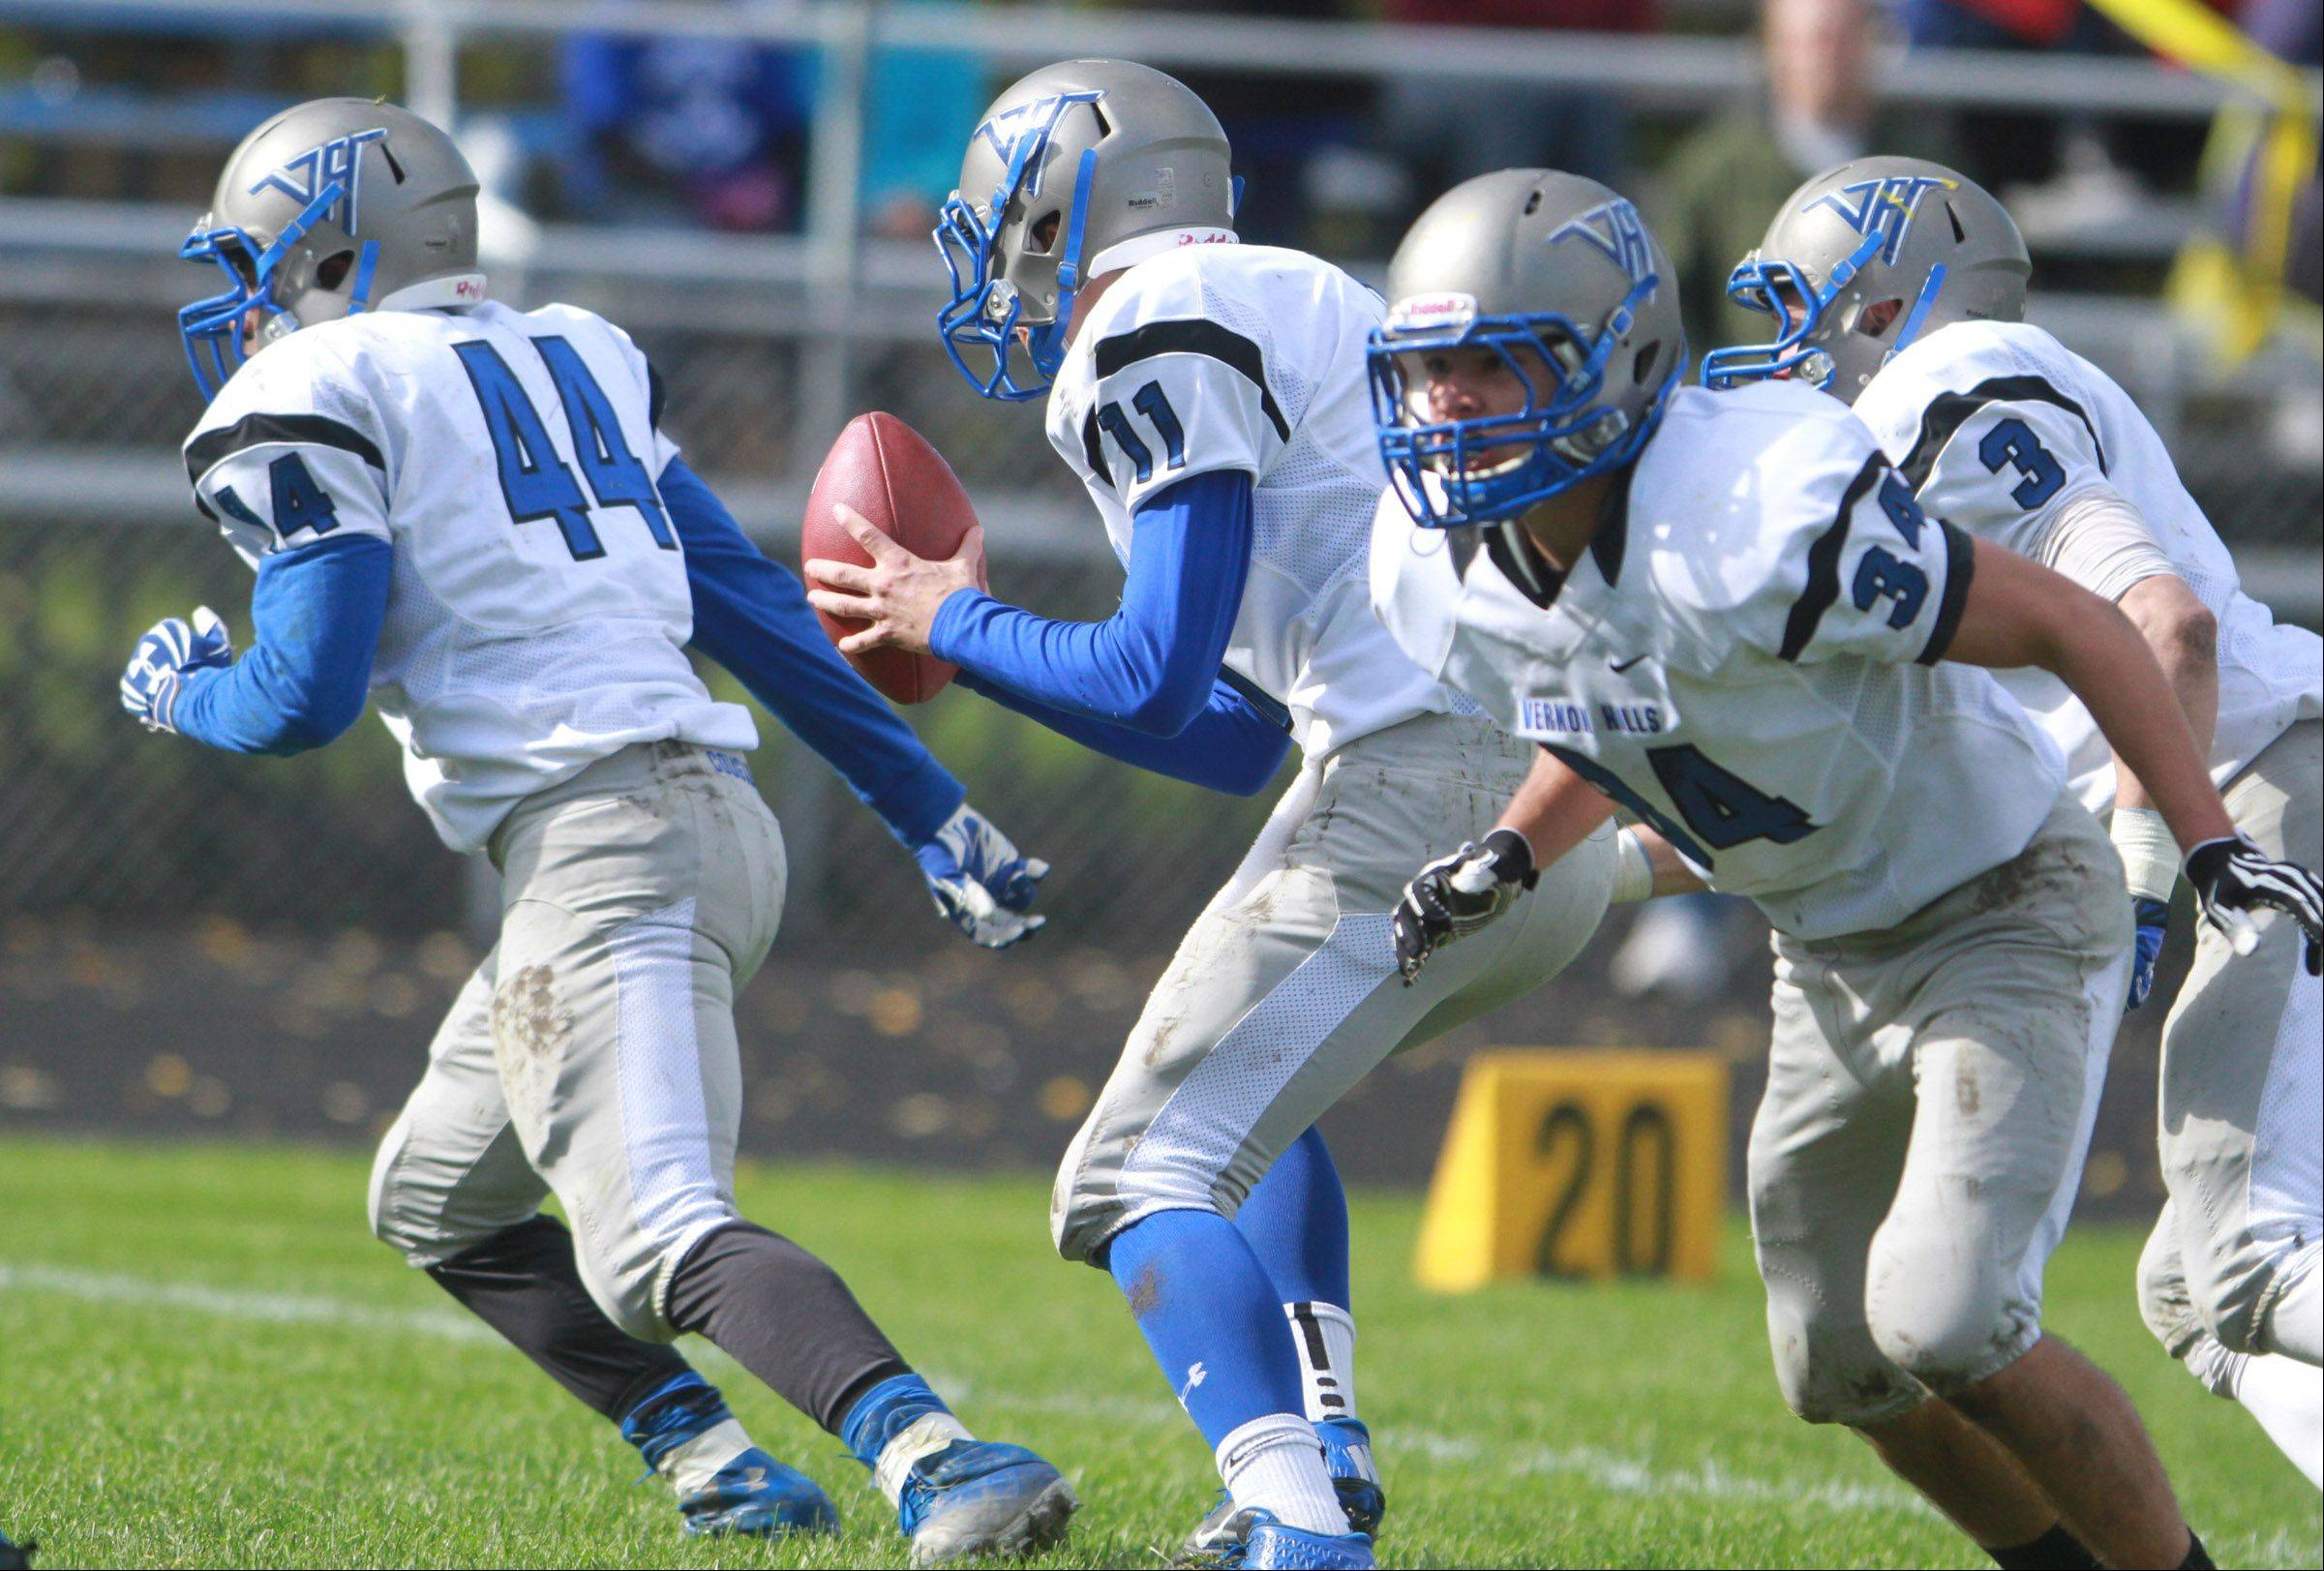 Week -8- Photos from the Vernon Hills at Round Lake football game on Saturday, Oct. 19 in Round Lake.